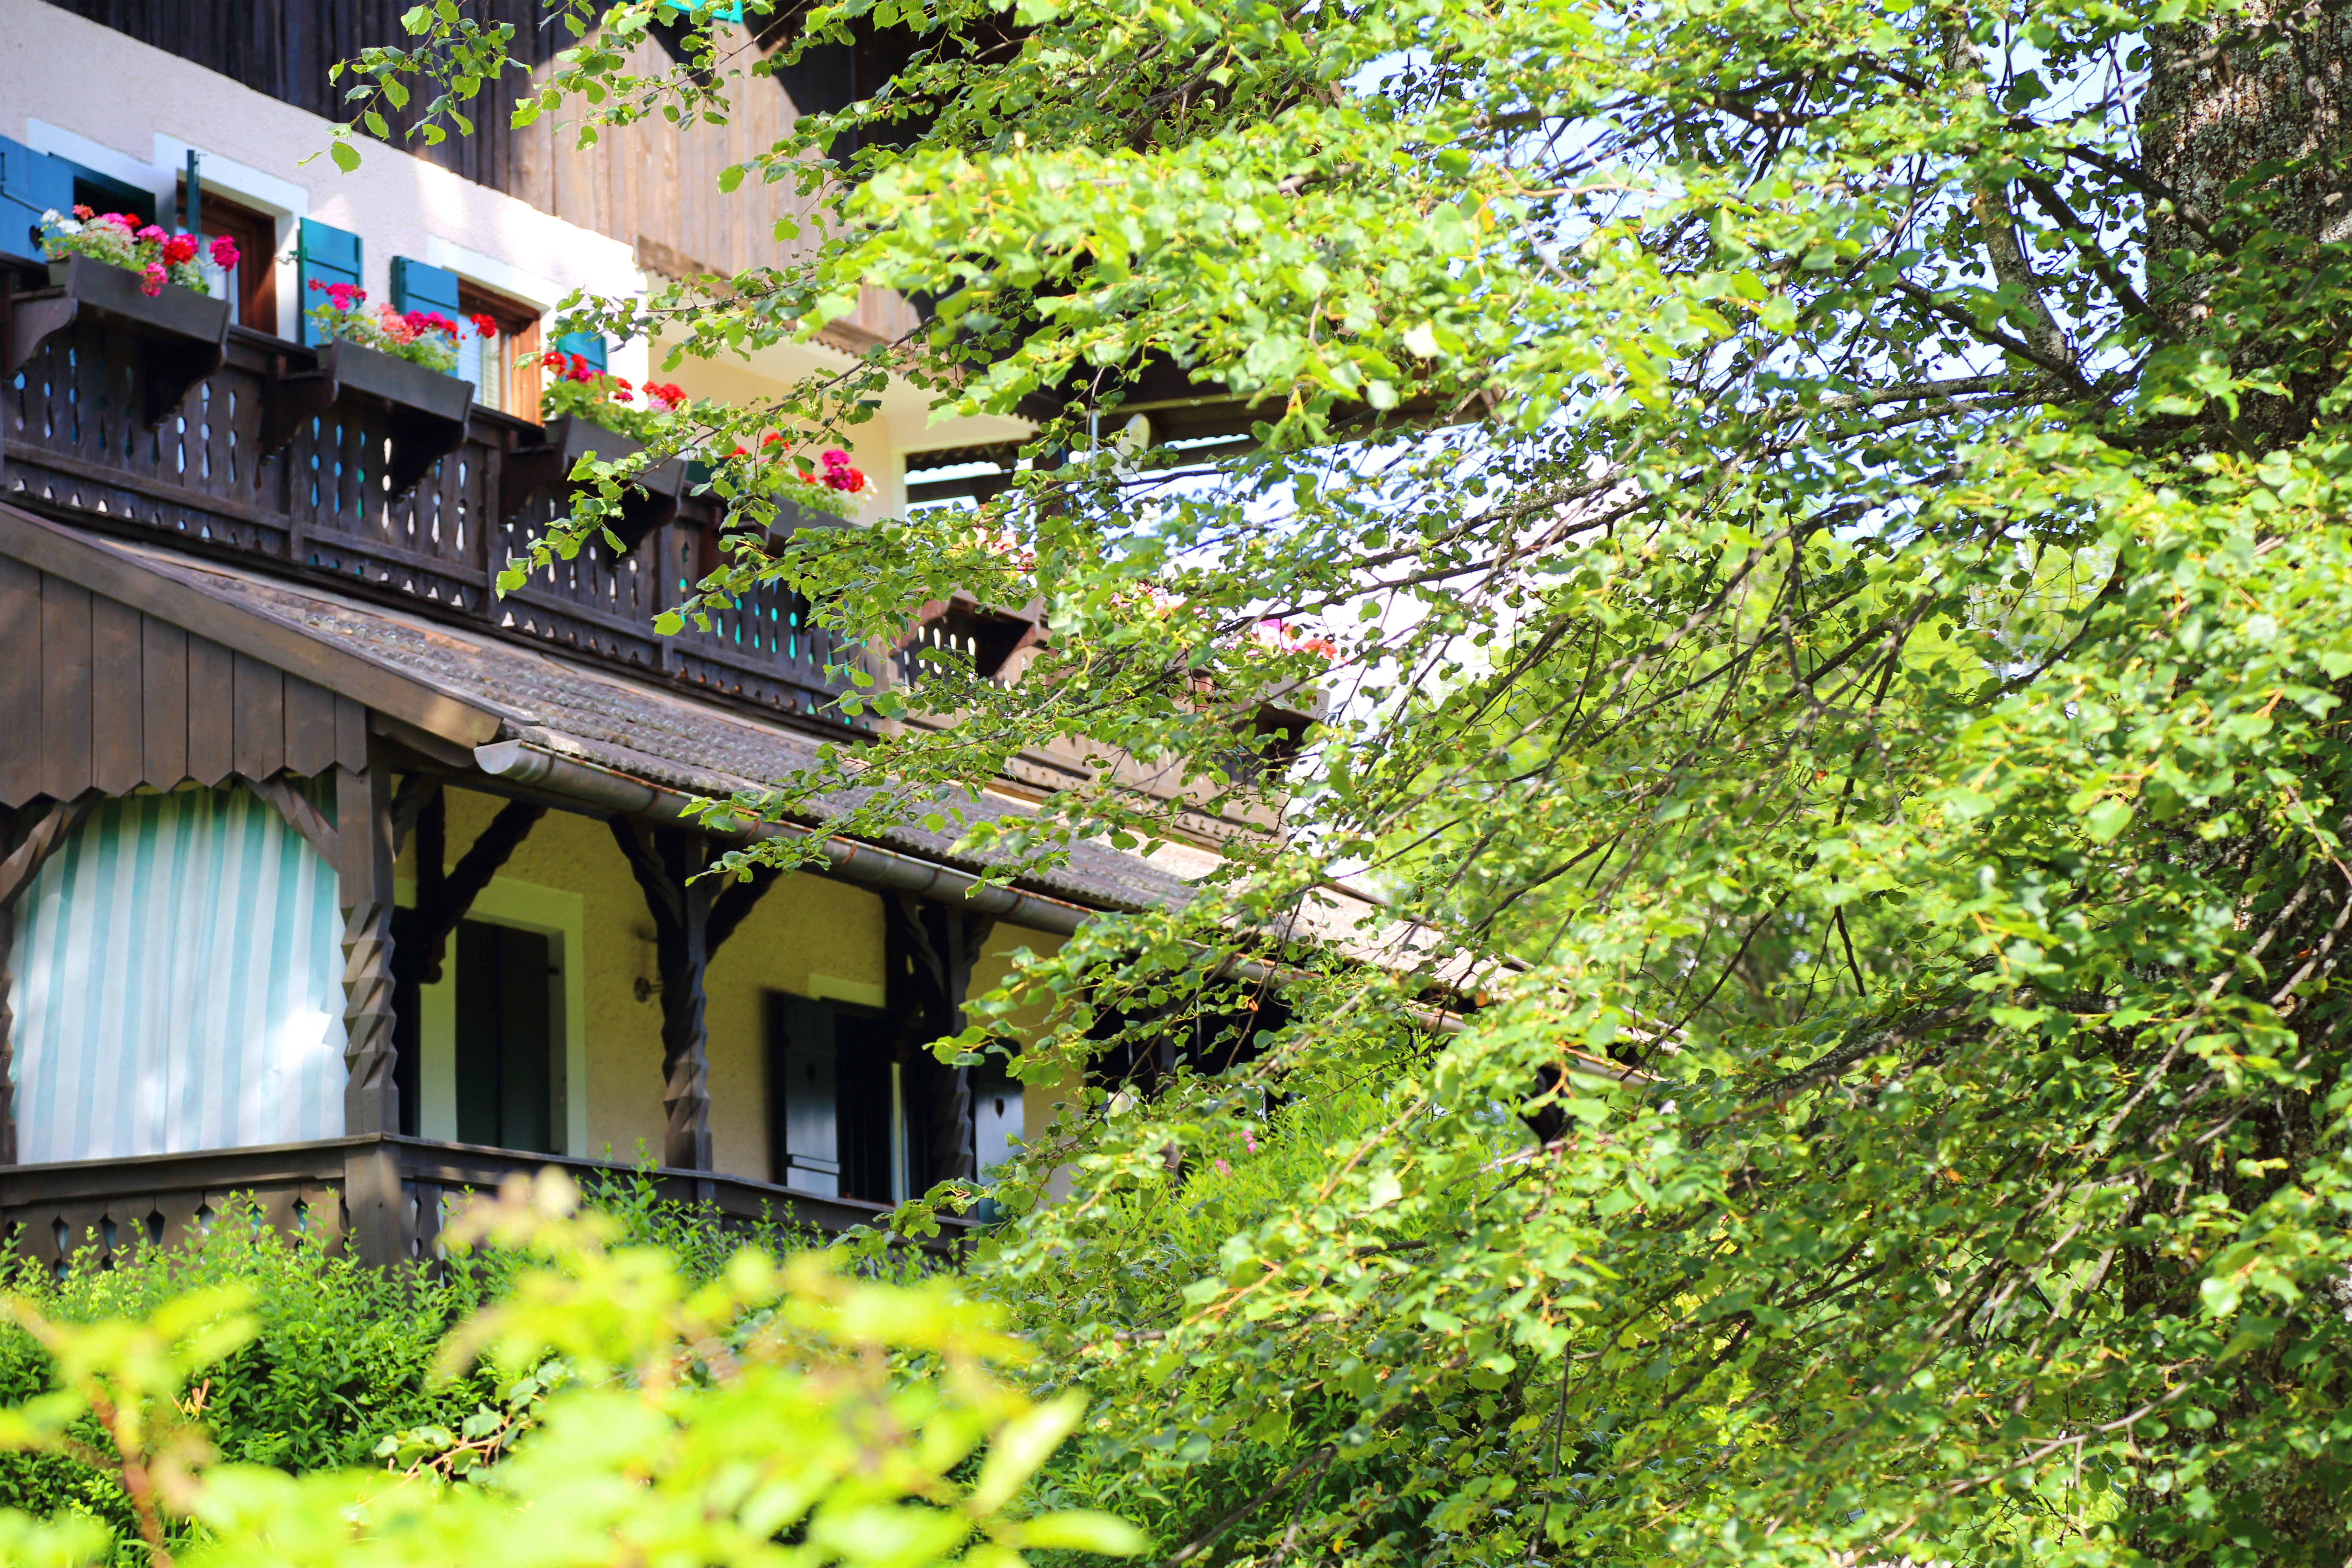 A view of the veranda of Malinowskis' house in Oberbozen. Photo by I.M.Carta